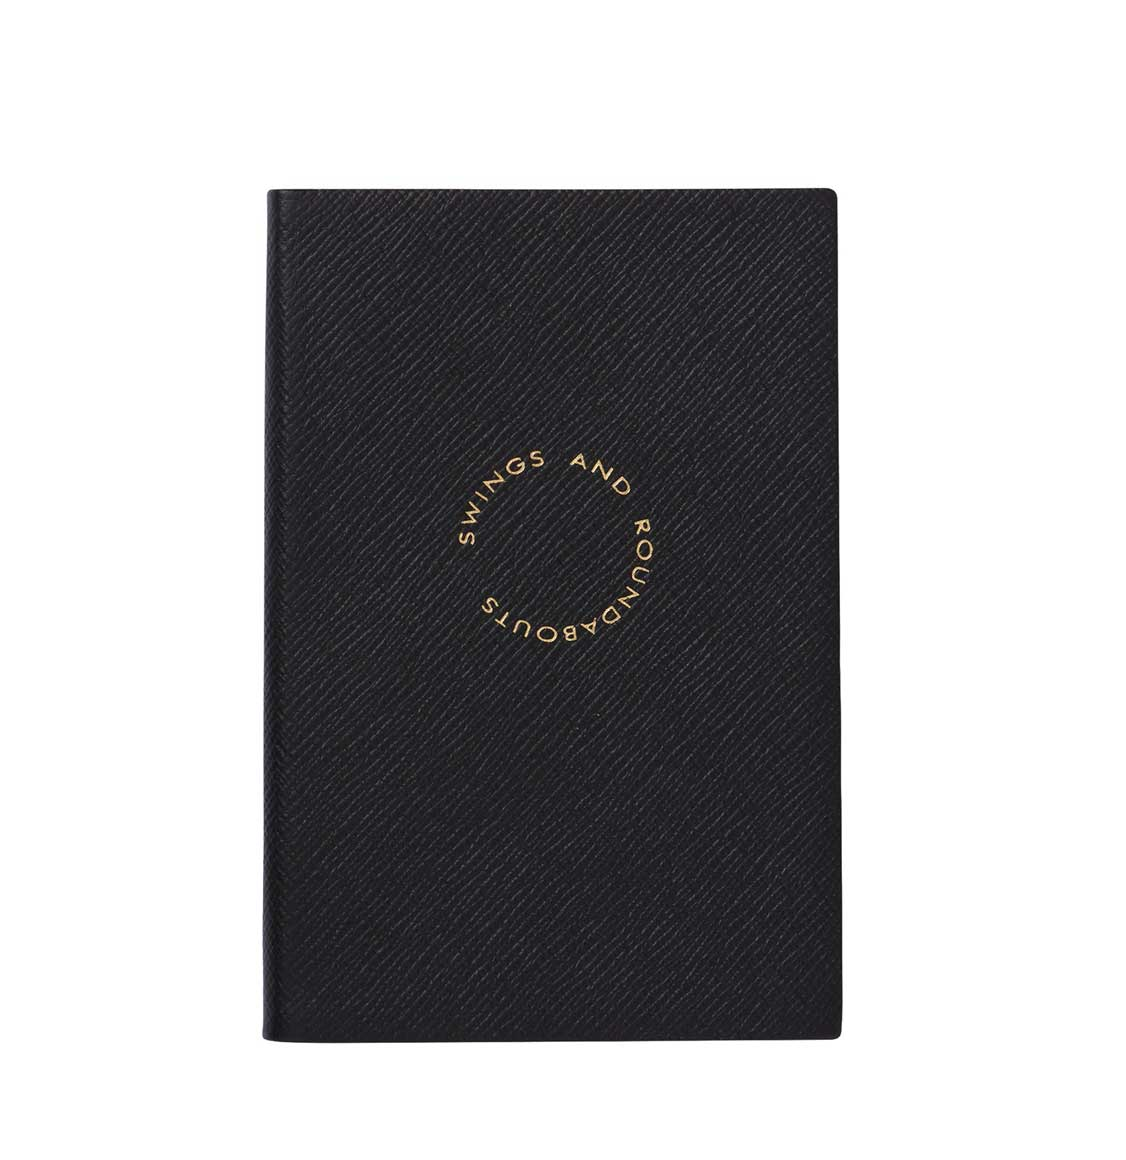 Smythson Swings and Roundabouts Notebook